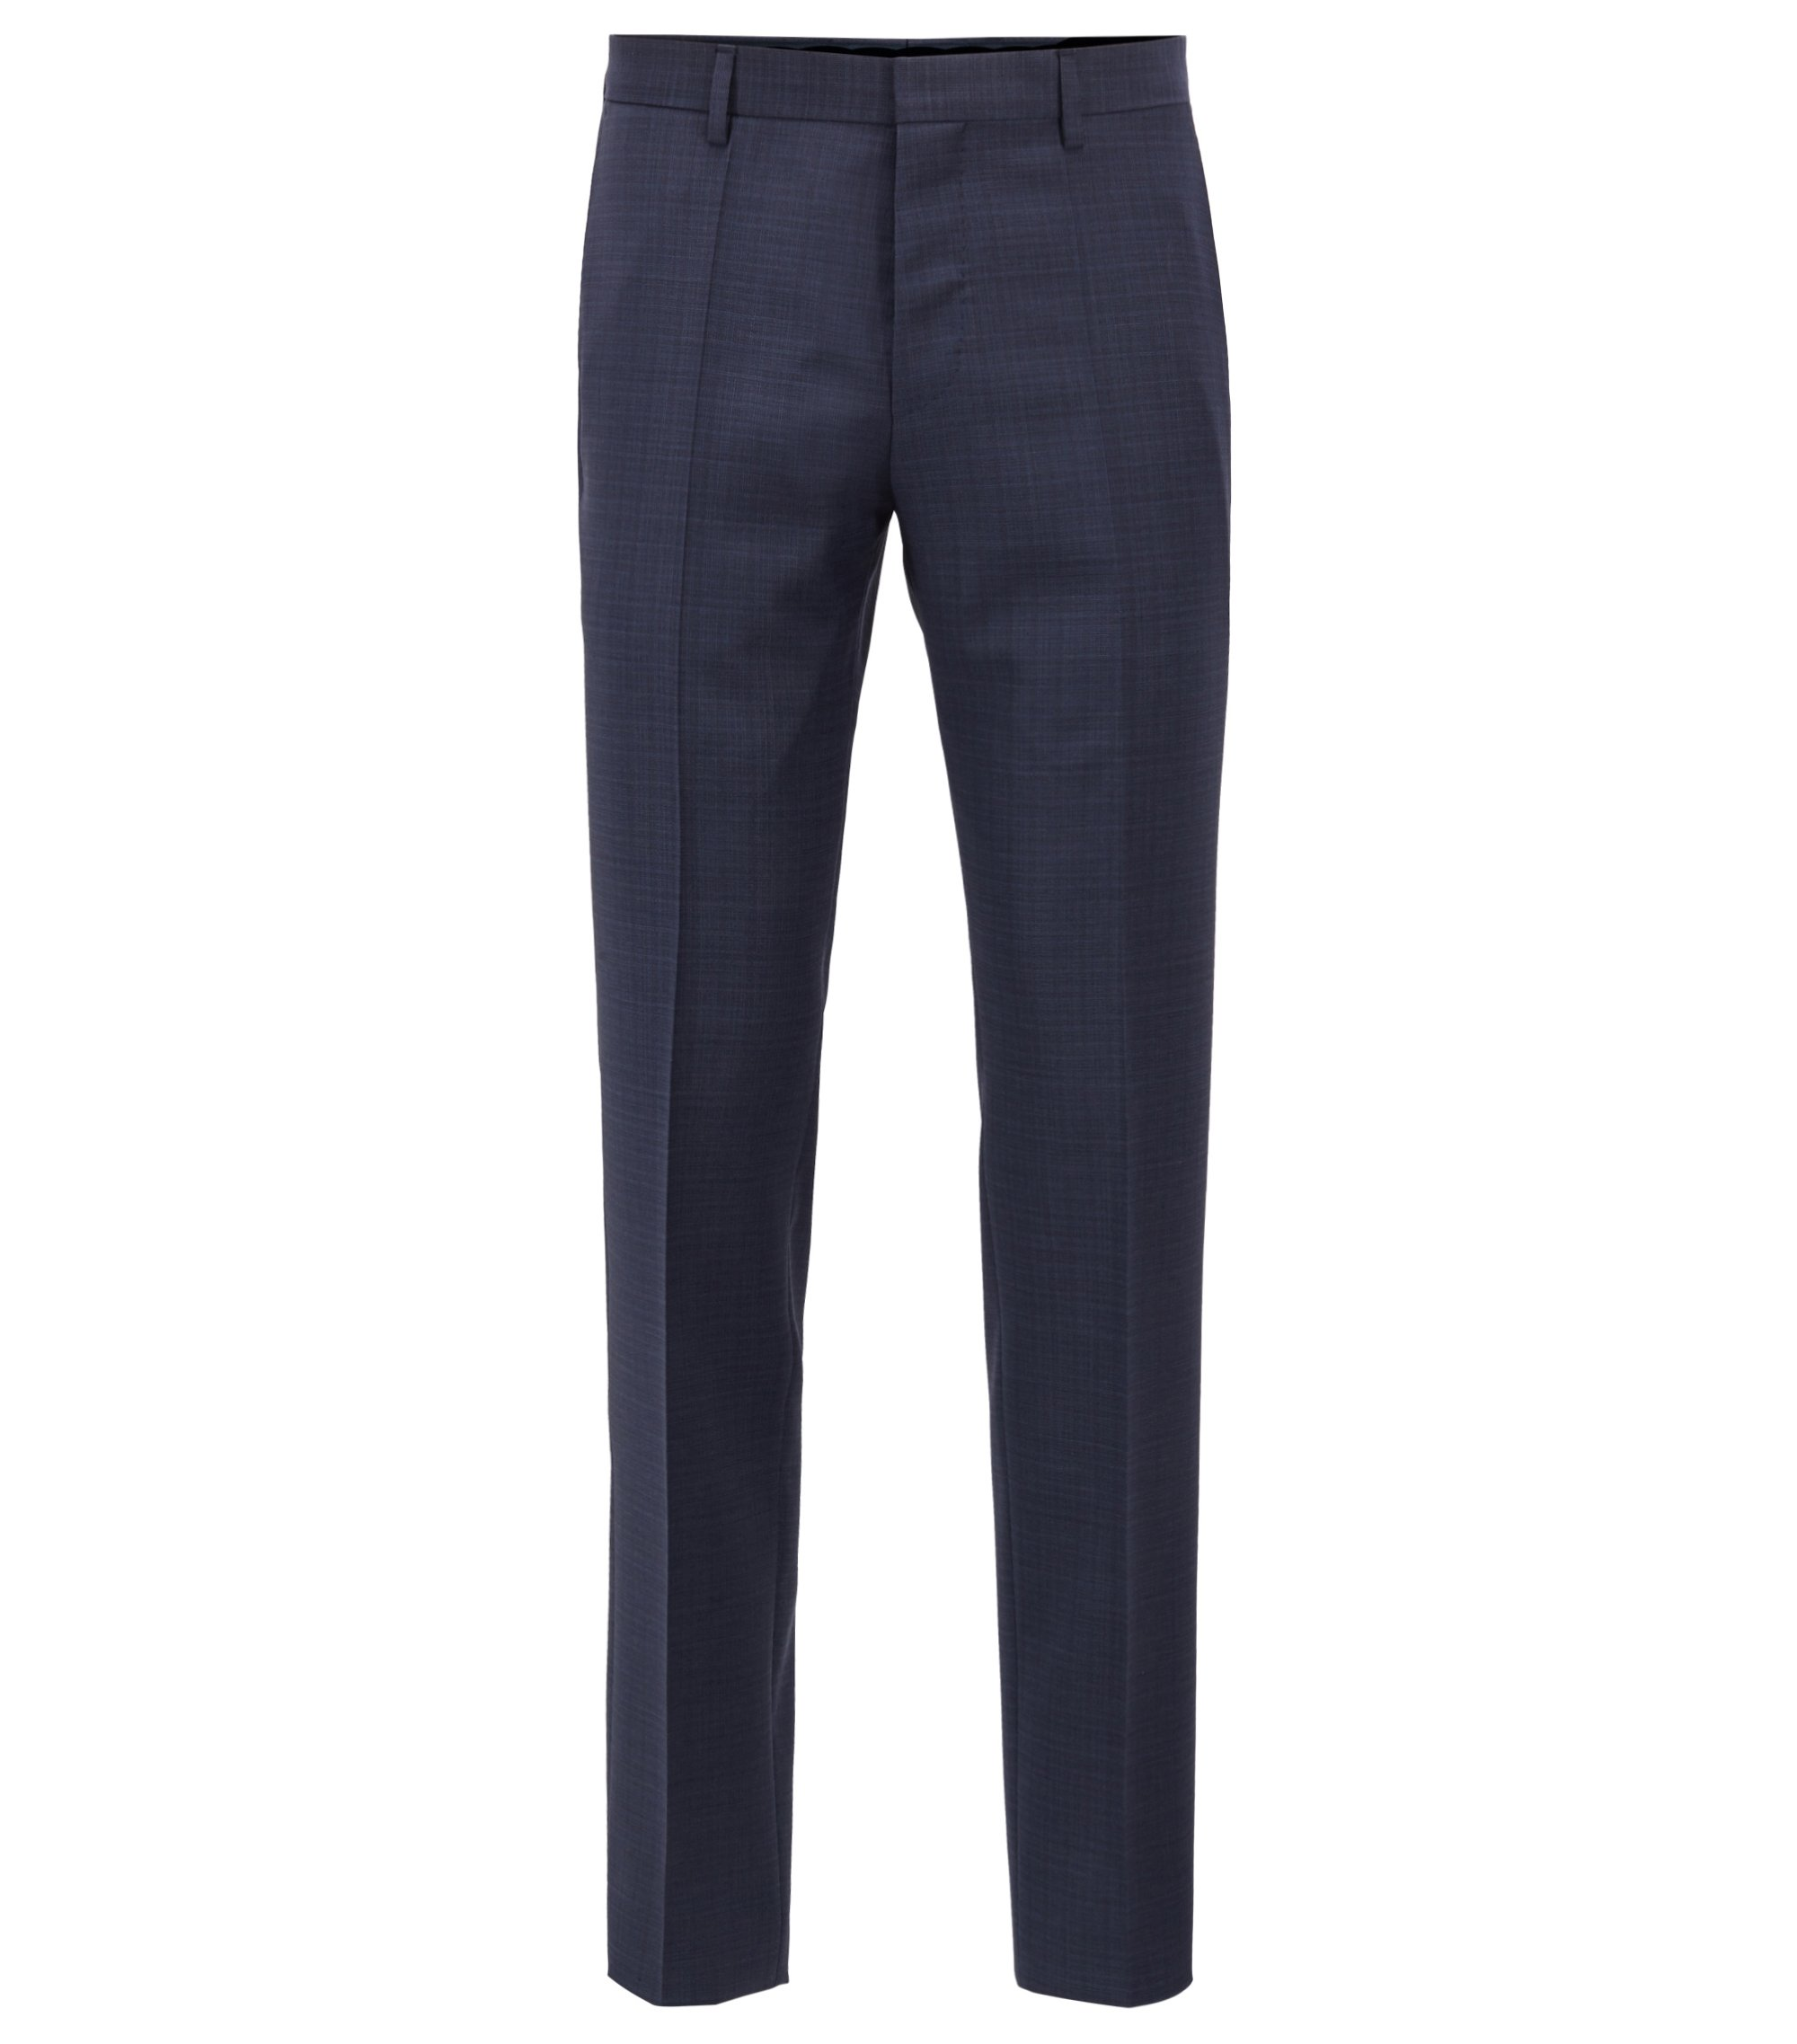 Slim-fit pants in patterned virgin wool serge, Dark Blue